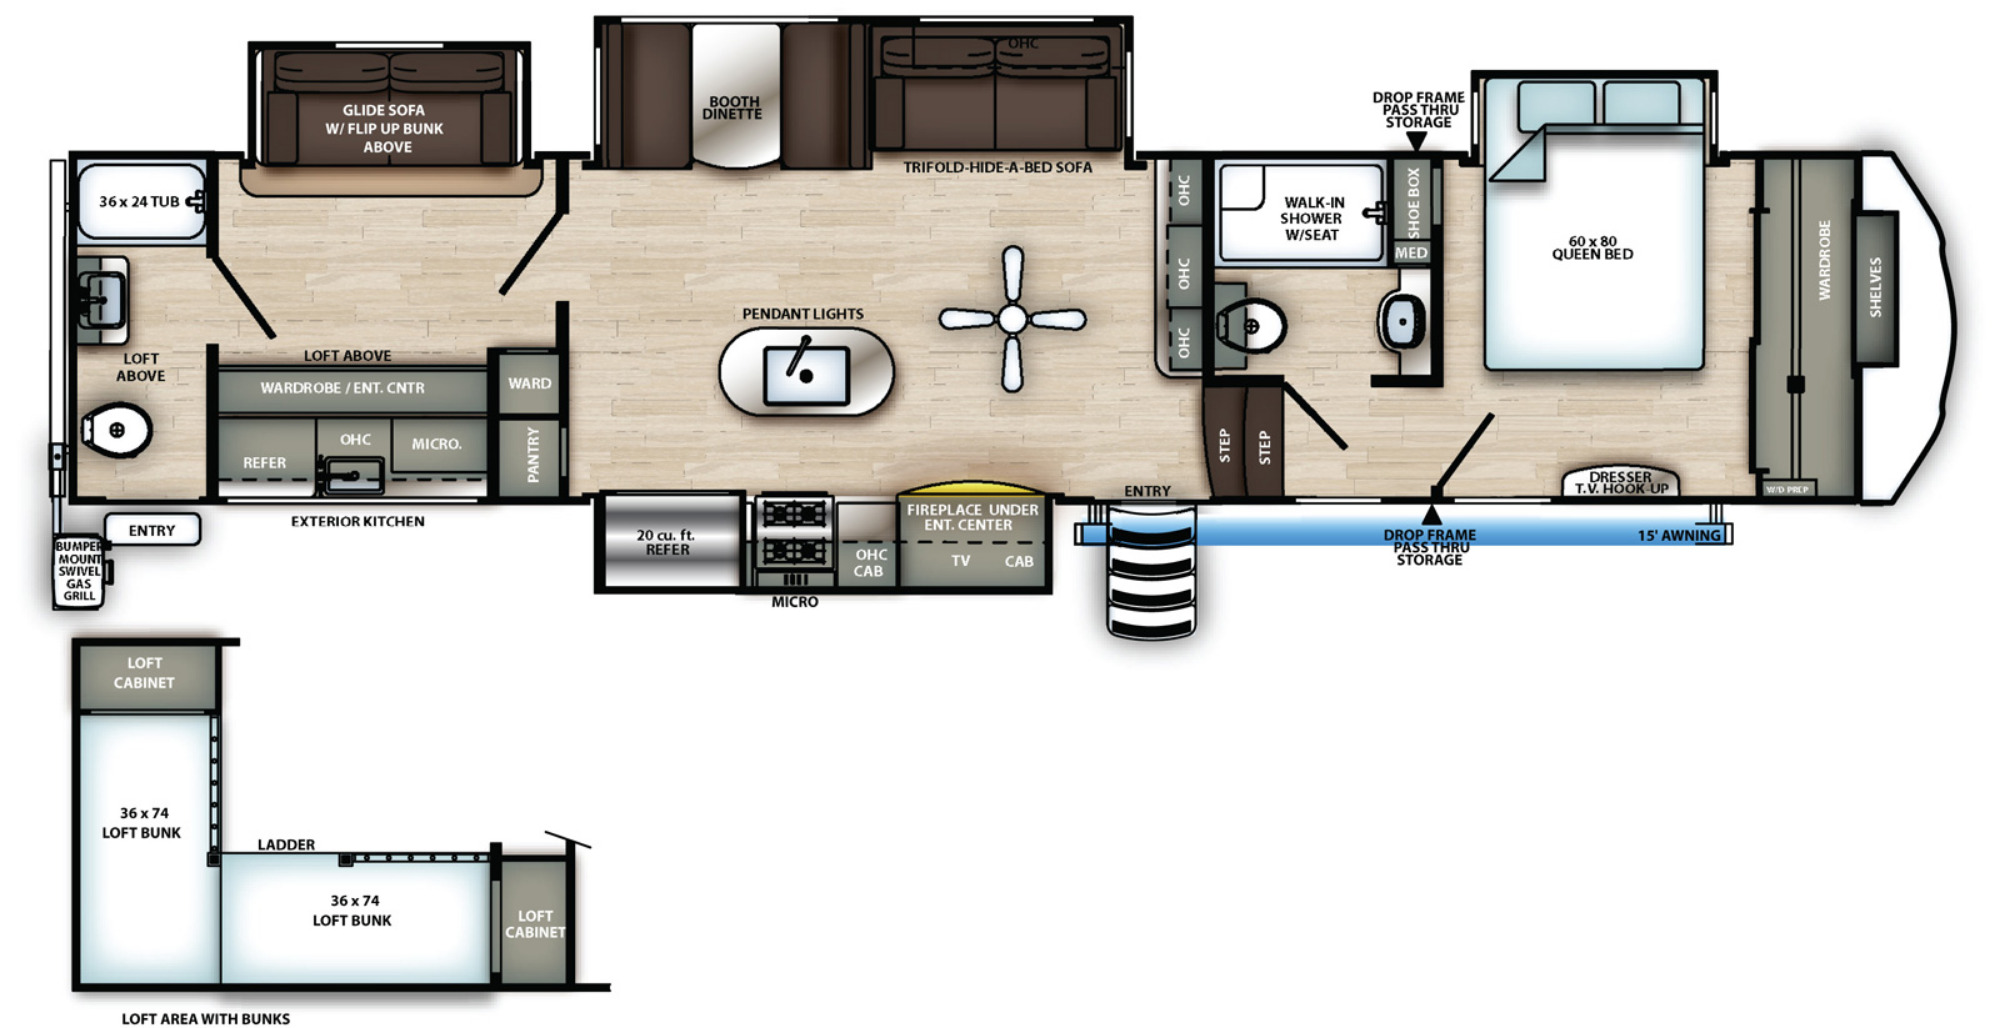 View Floor Plan for 2021 FOREST RIVER SANDPIPER 383RBLOK